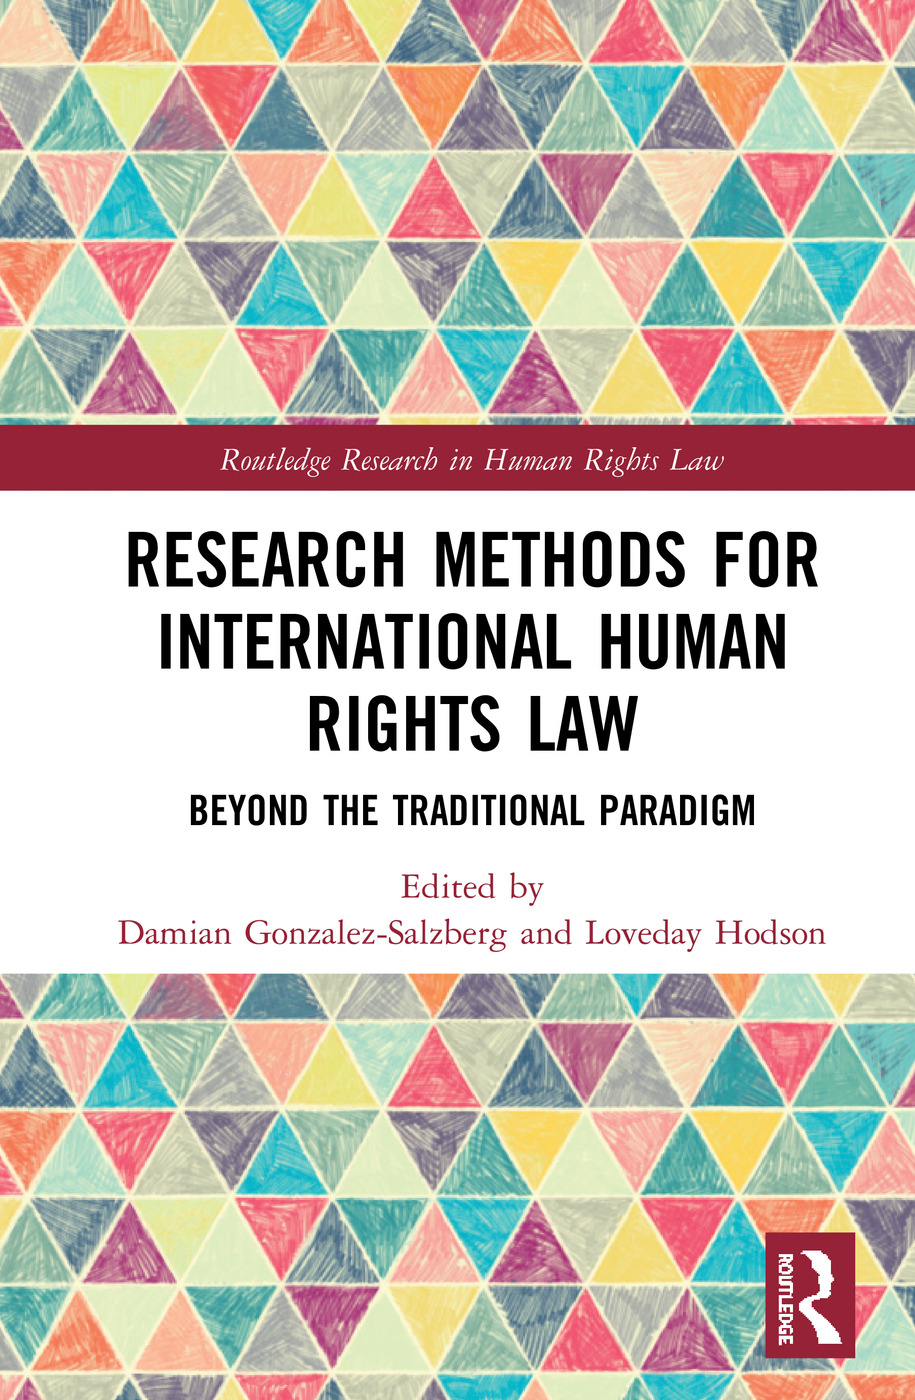 Research Methods for International Human Rights Law: Beyond the traditional paradigm book cover